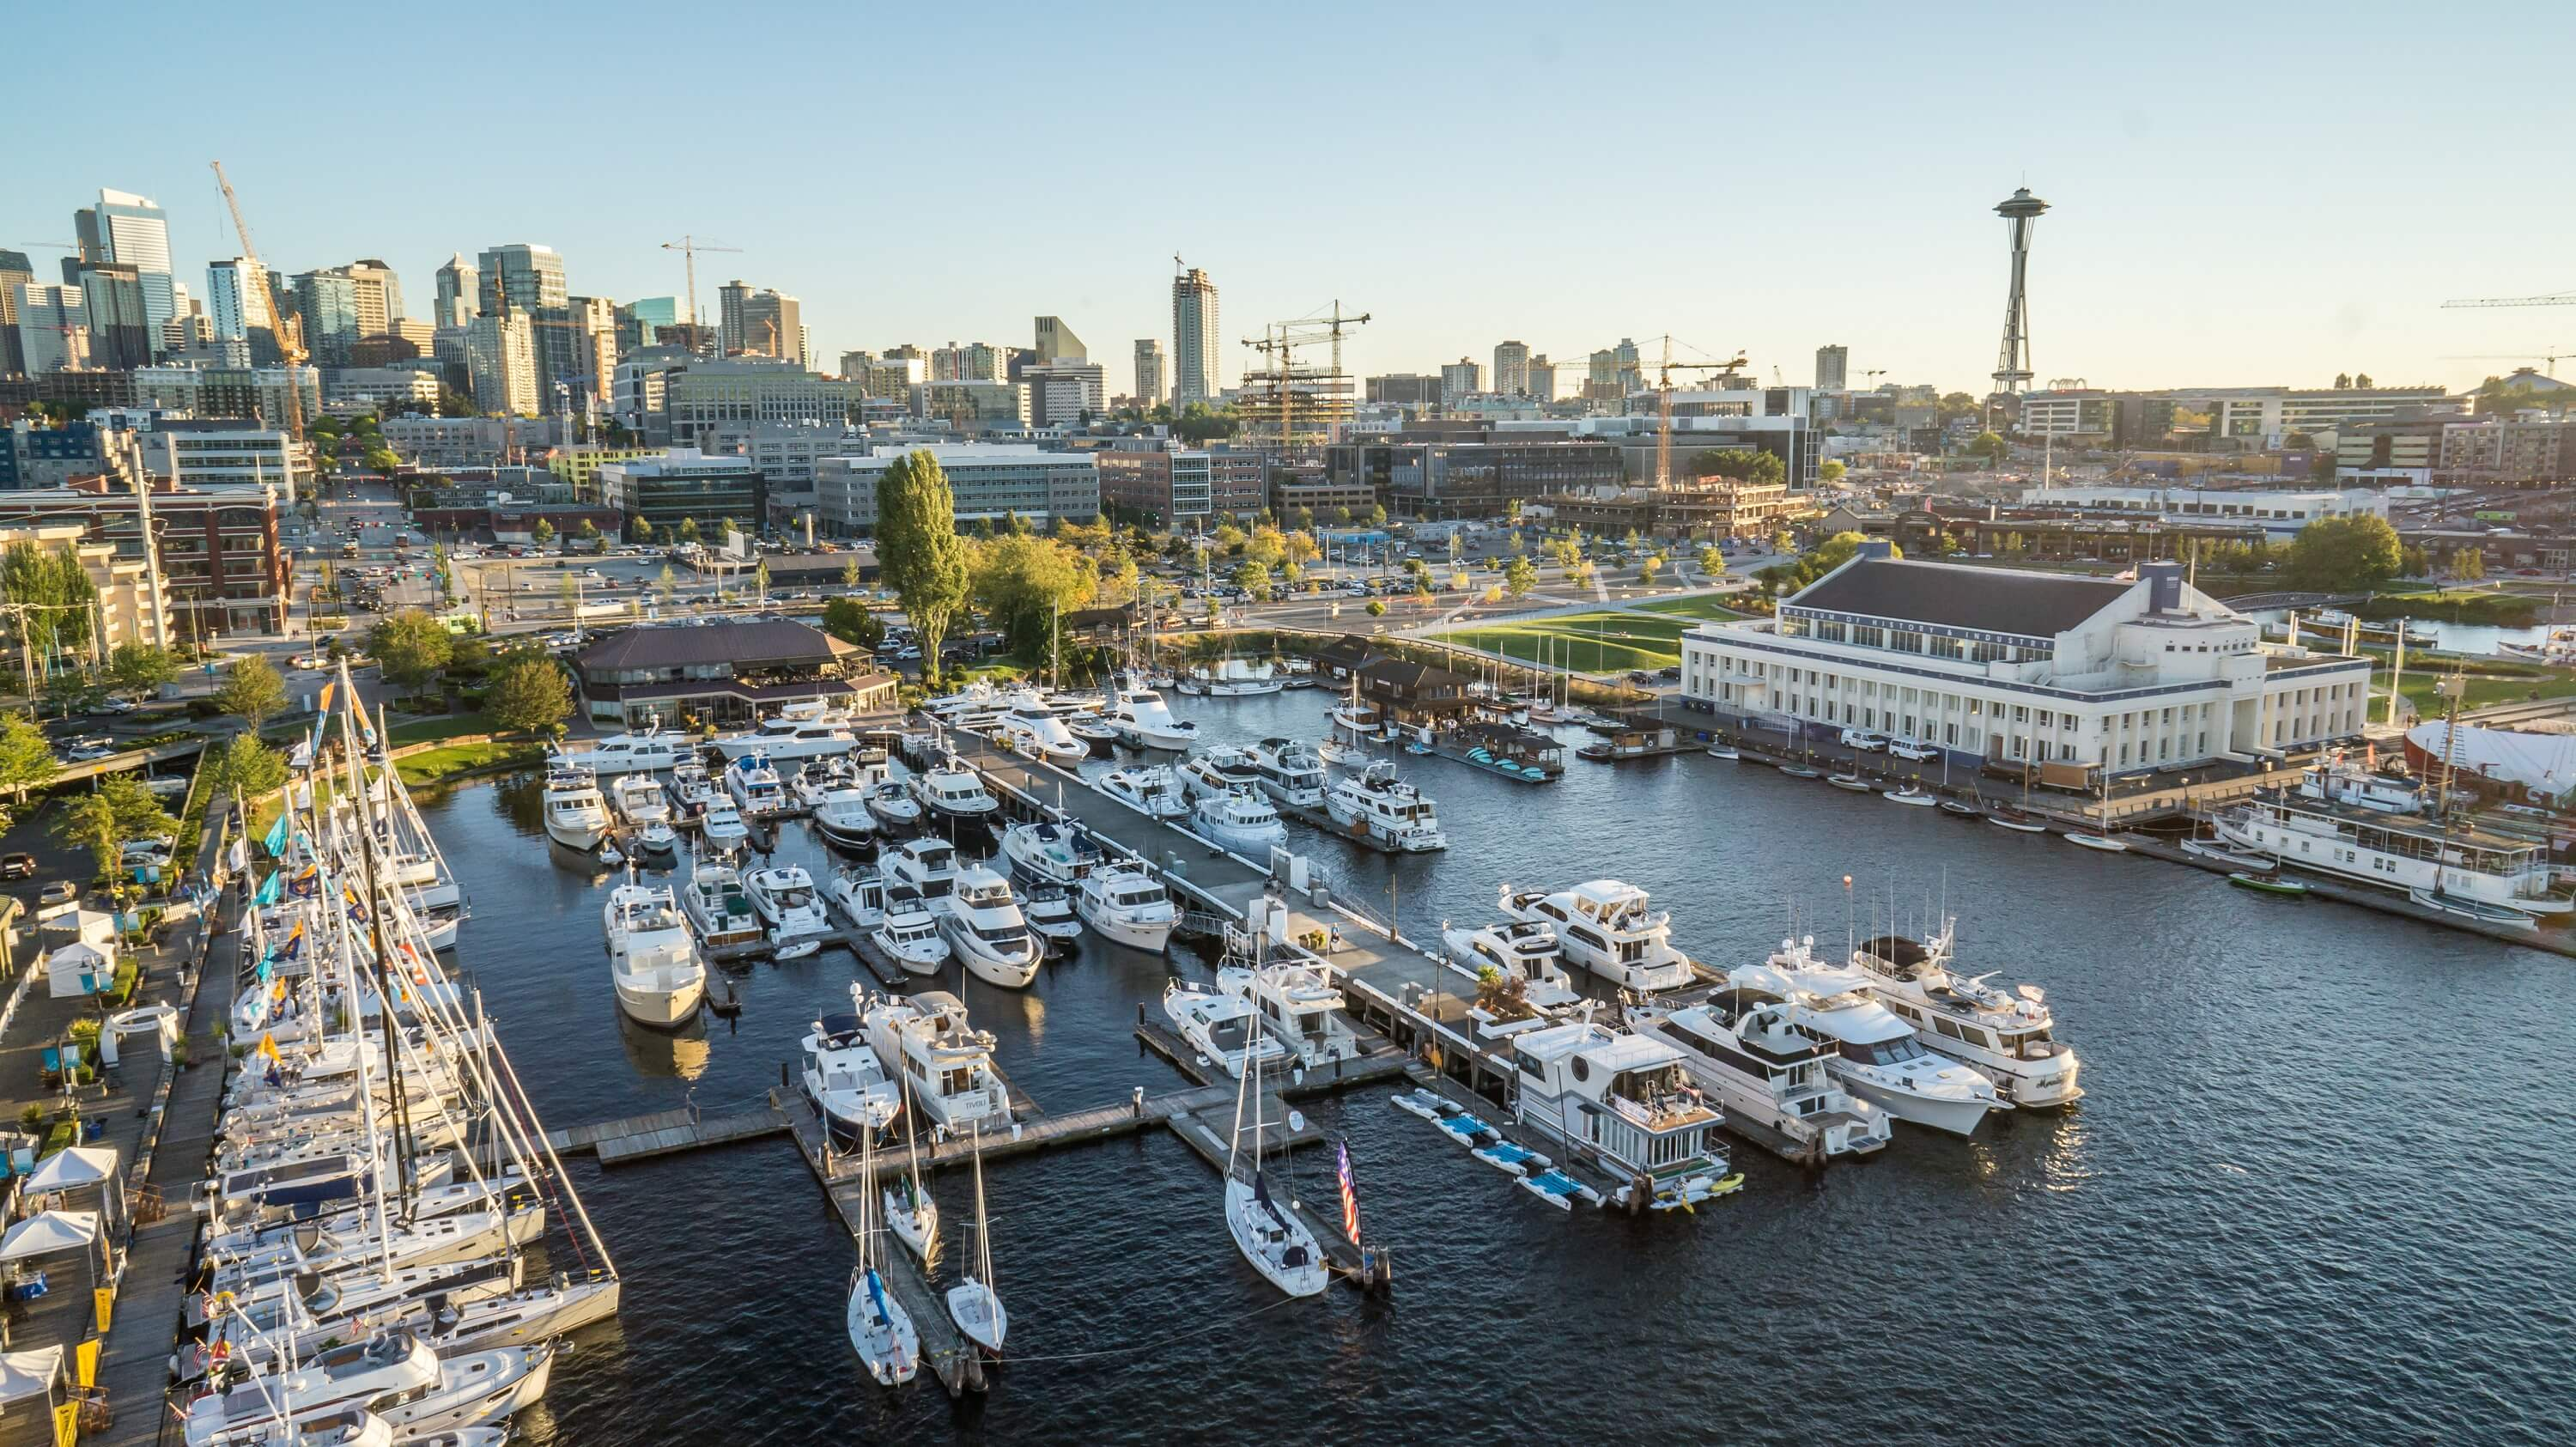 Check out the Washington Waterfront Home Tour June 23-24 to see these fabulous boats and the other beautiful properties along our state's shores.